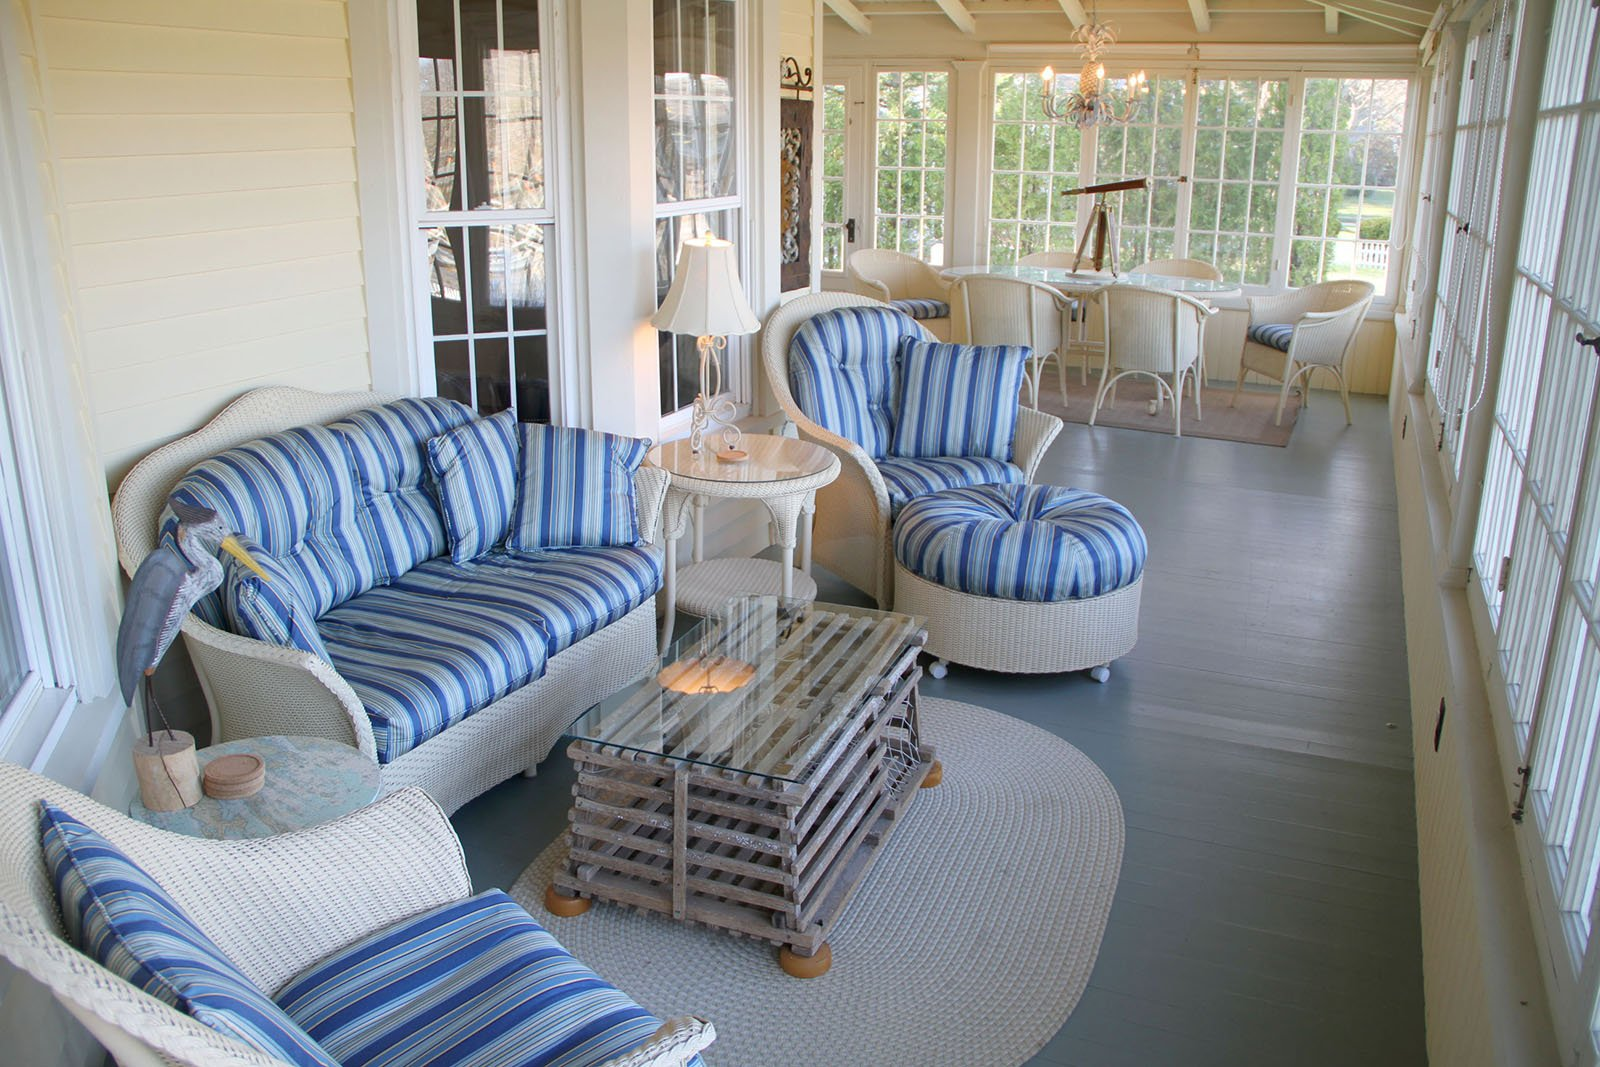 3-Season Porch - Dining on the Kennebunk River.  See much more at www.luxurykennebunkporthouserental.com